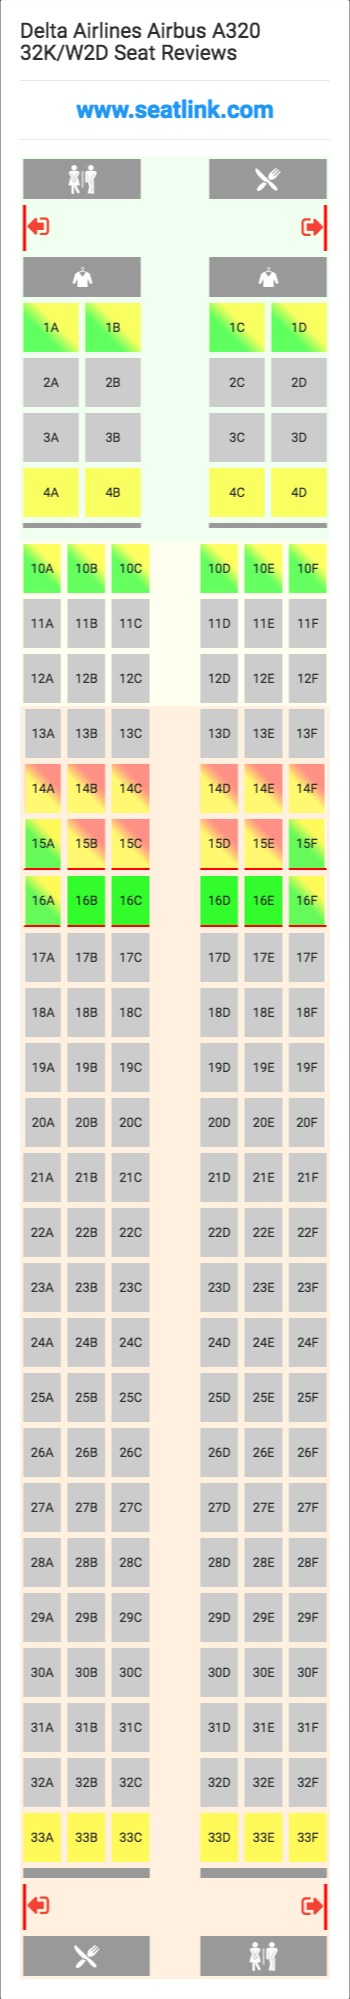 Delta Airlines Airbus A333 Seating Chart 200